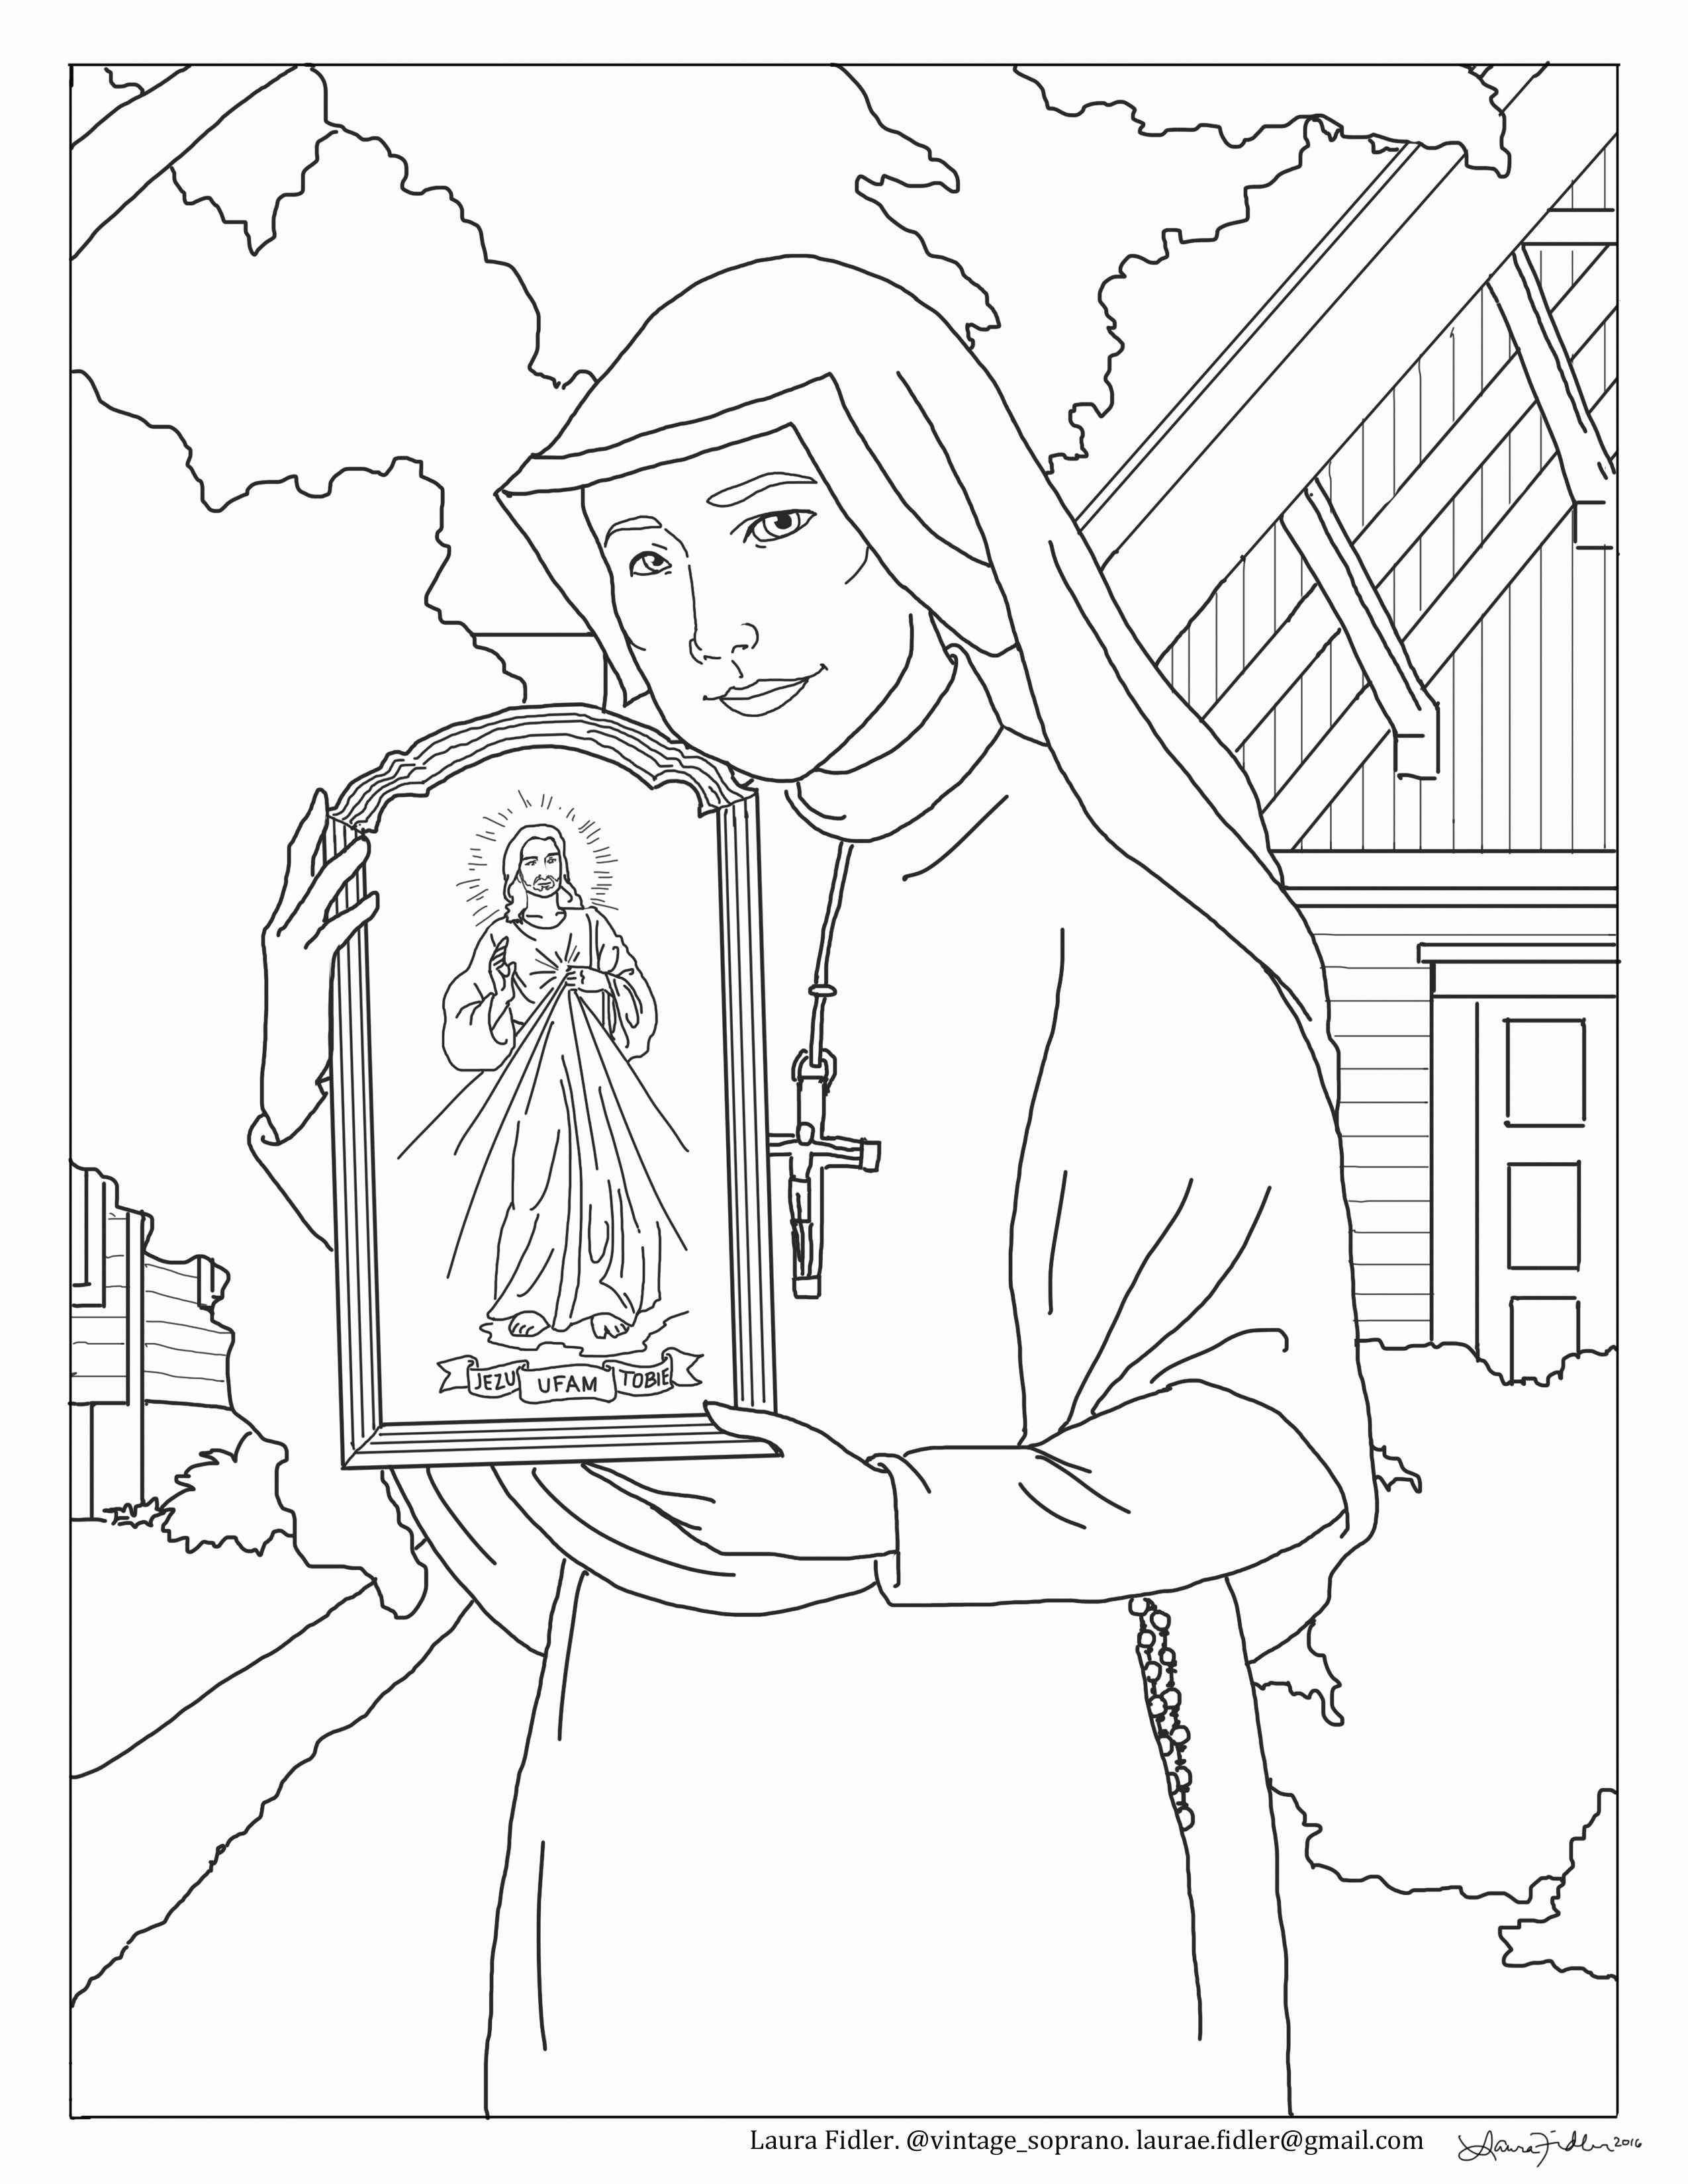 Divine Mercy Coloring Page New Free St Faustina Divine Mercy Coloring Page Inspire The Faith In 2020 Divine Mercy Sunday Catholic Coloring Divine Mercy Chaplet